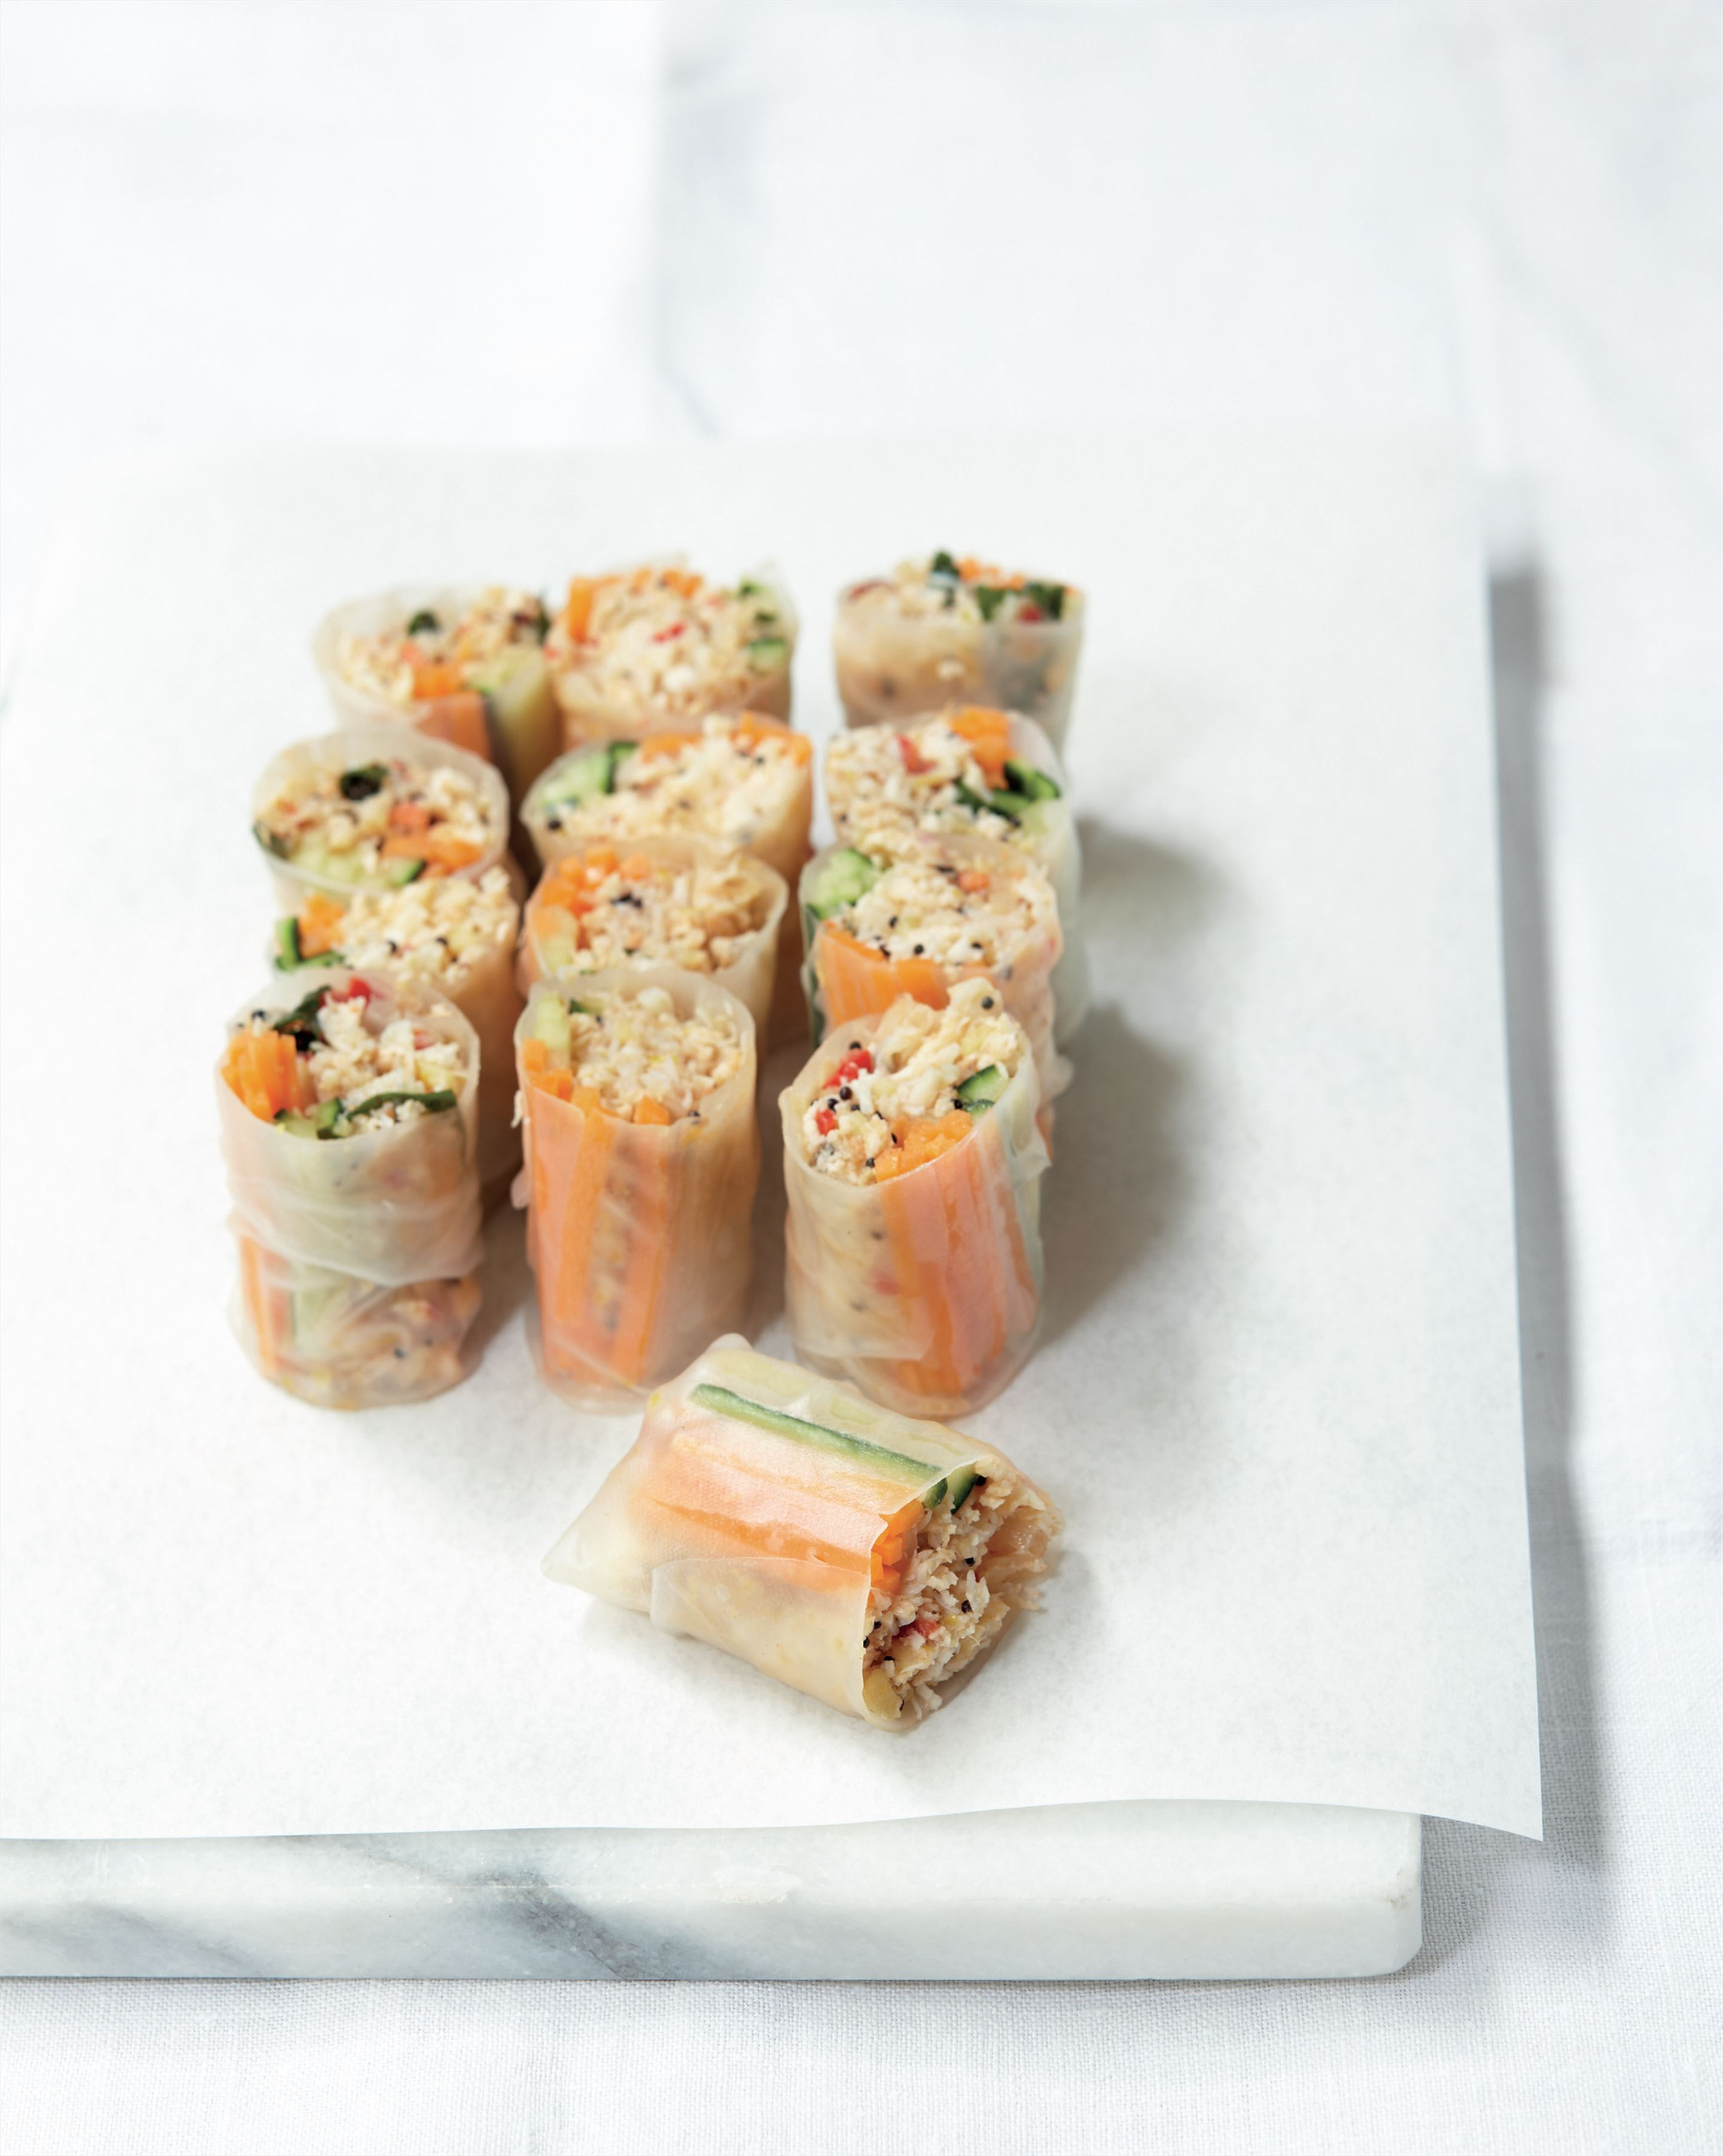 Southern-spiced Vietnamese crab spring rolls